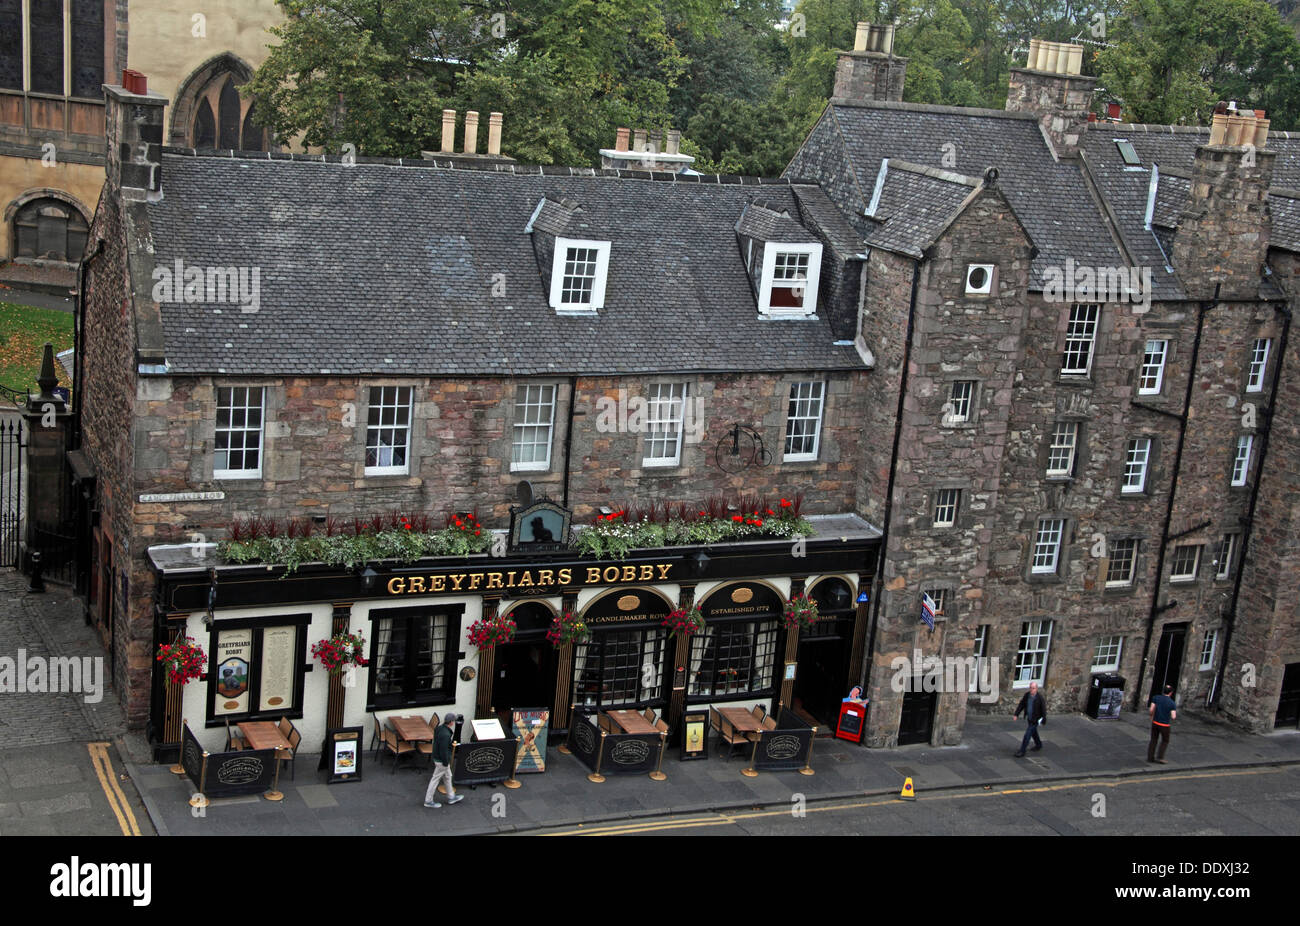 Looking down on Greyfriars Bobby Pub from above, Edinburgh Capital City, Scotland UK - Stock Image